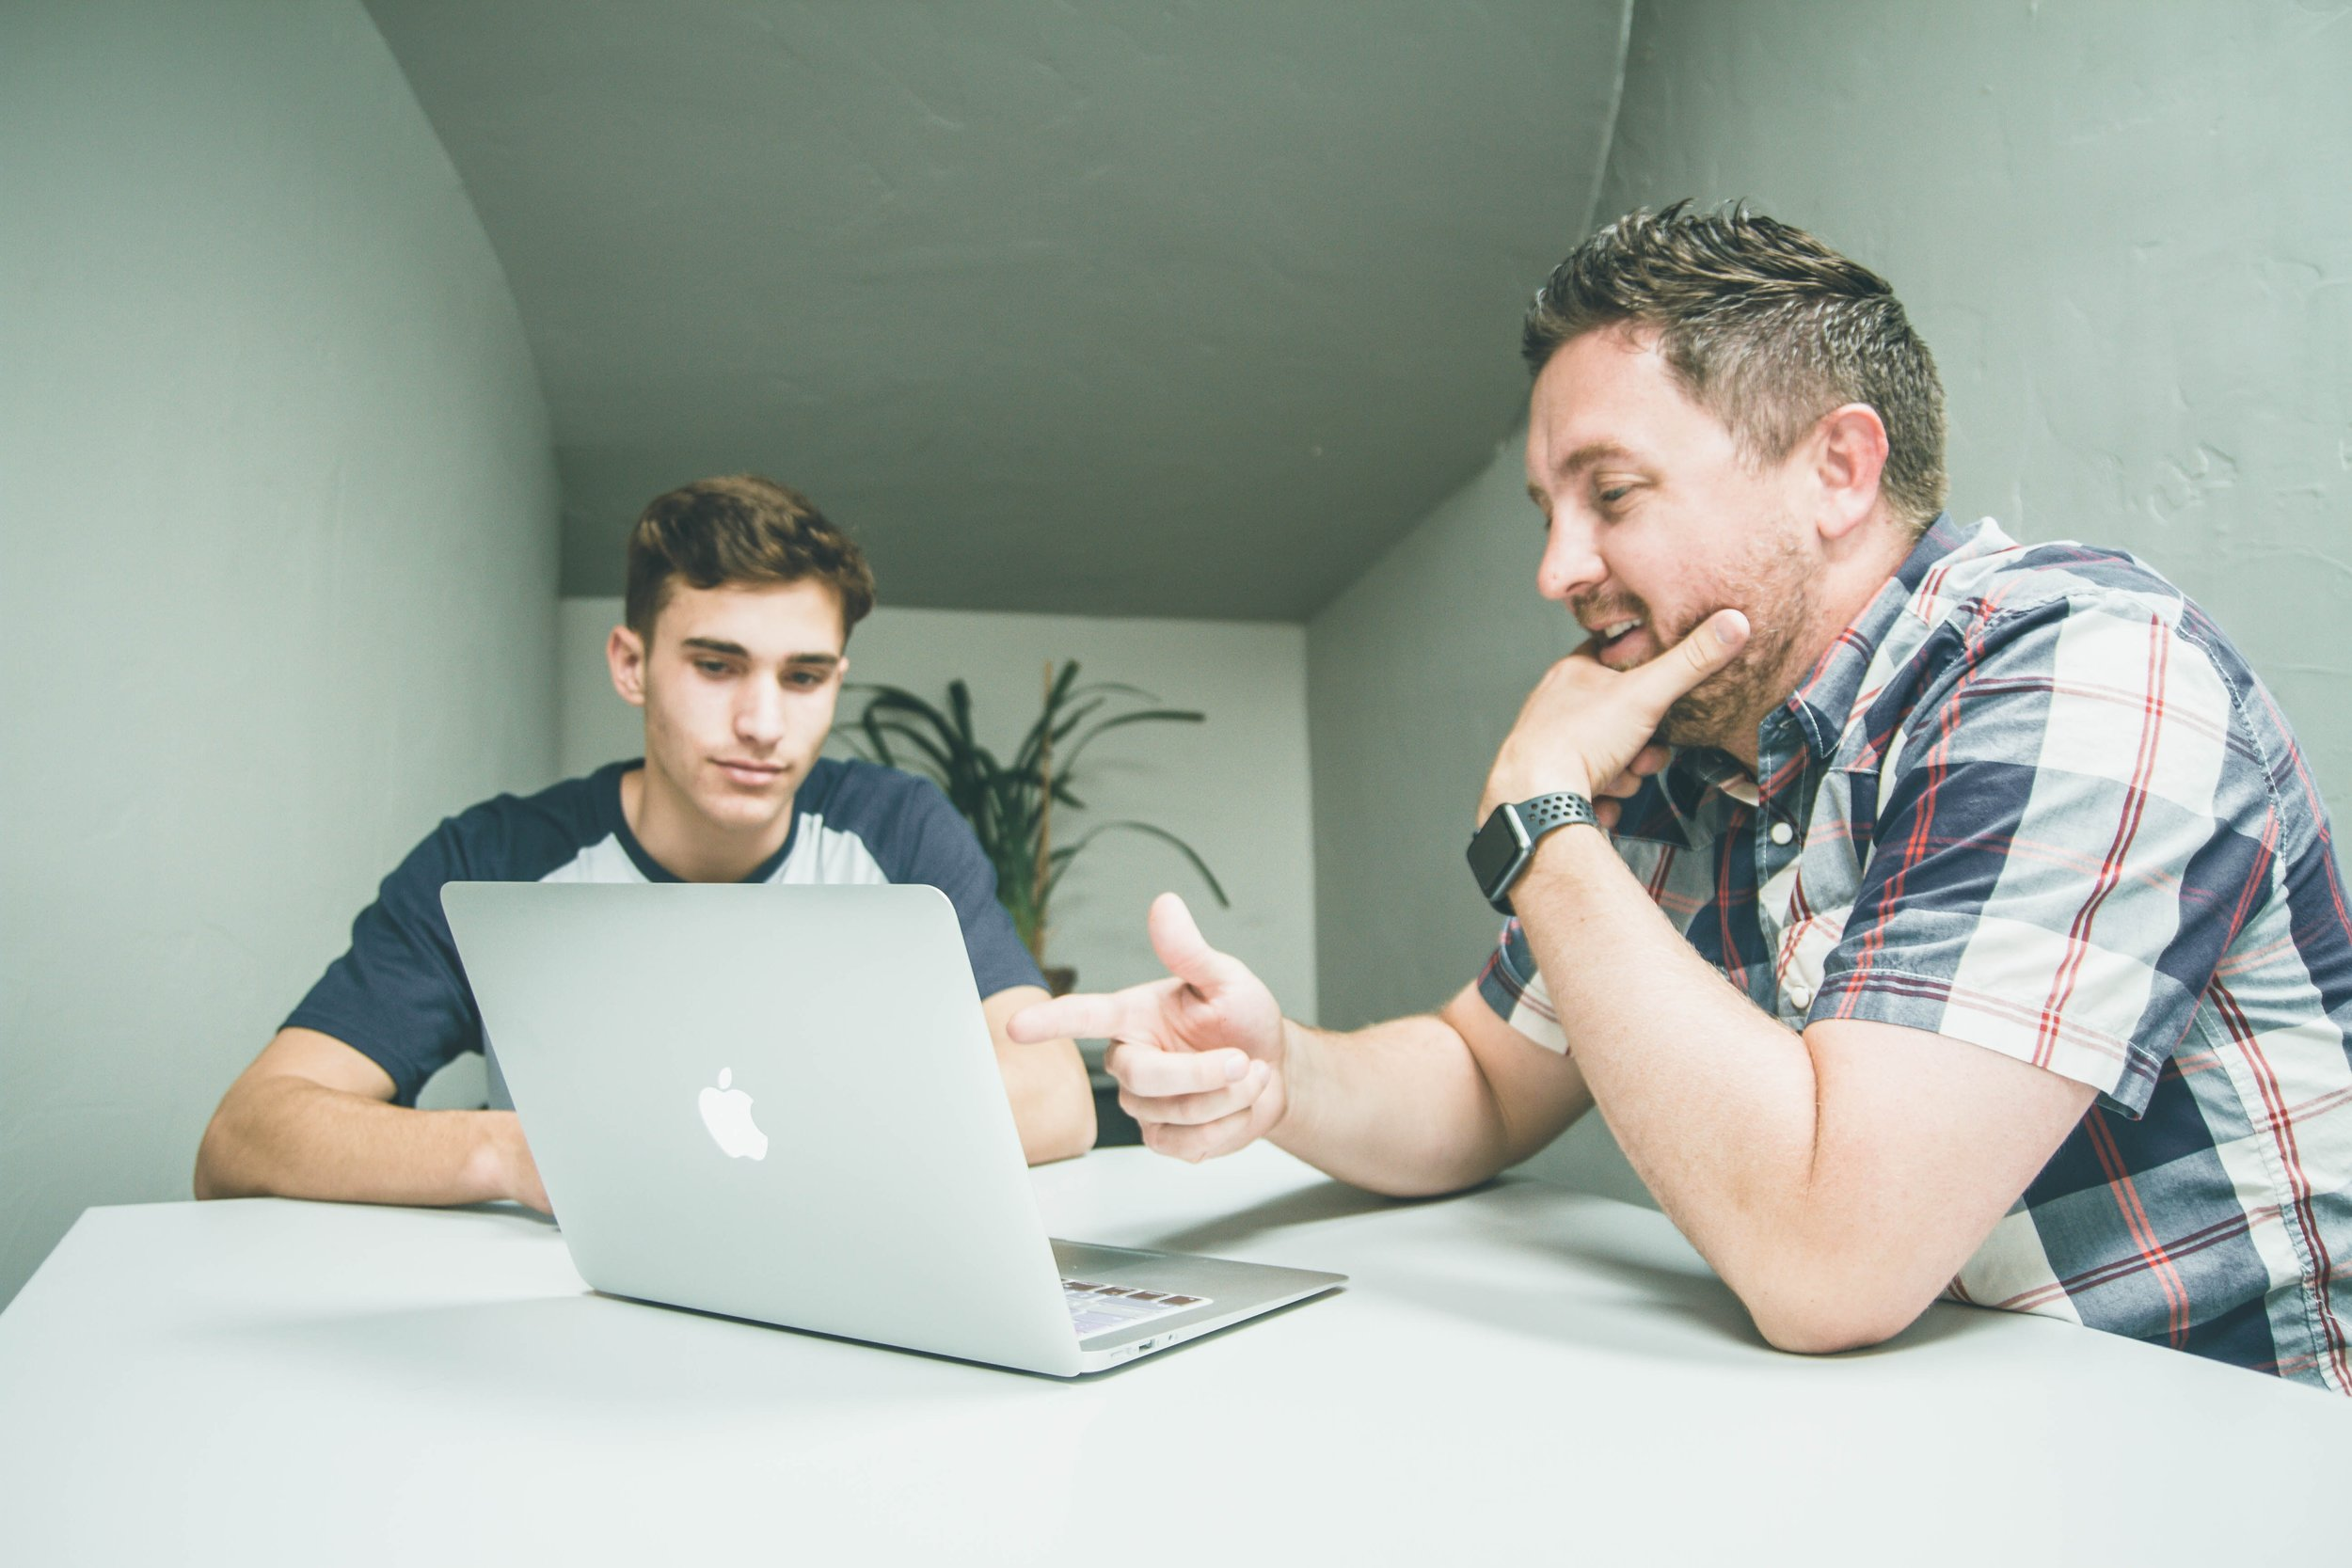 Freelancers & Start-ups - We'll be recruiting a community of freelancers and start-ups who will be asked to commit between 1 day to 1 week of their time to work with a young person. We'll pair you with a young person that can match your desired work schedule and who is interested in learning more about your trade or has skills that might compliment yours.You and the young person will also be invited to work together from Works Social where you can meet others involved in the project.Apply now - deadline 16 September 2019